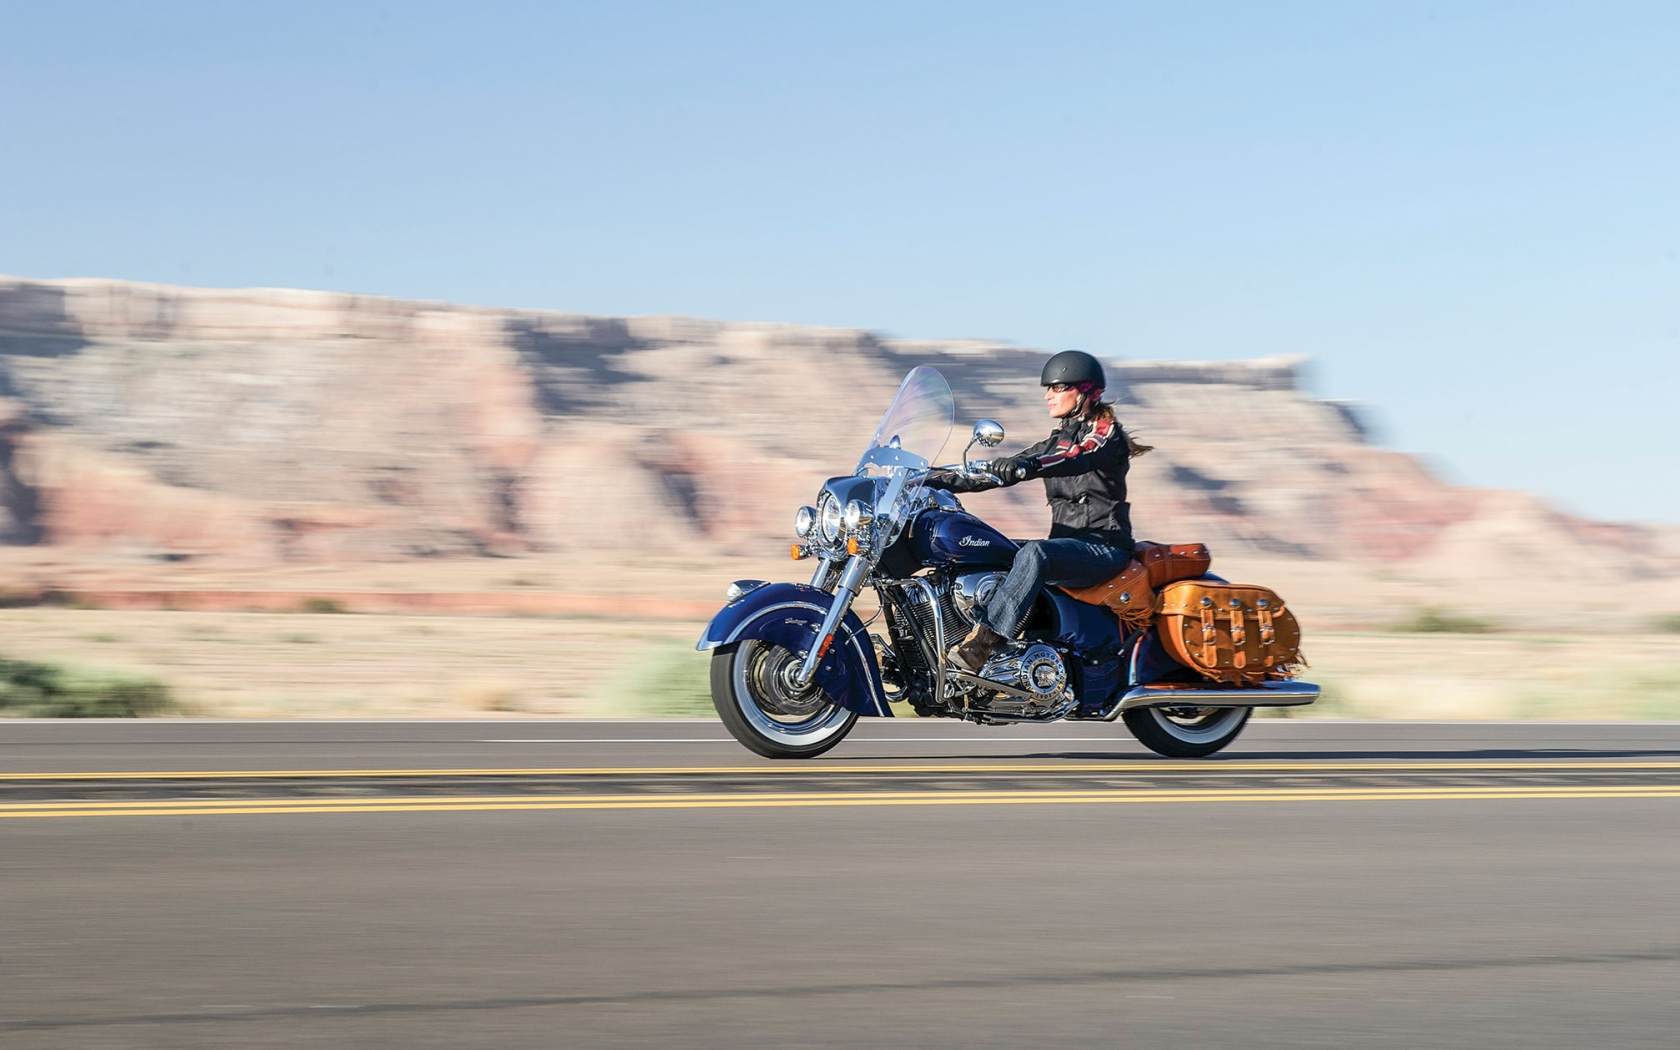 Indian Chief Vintage 2014 - 1680x1050